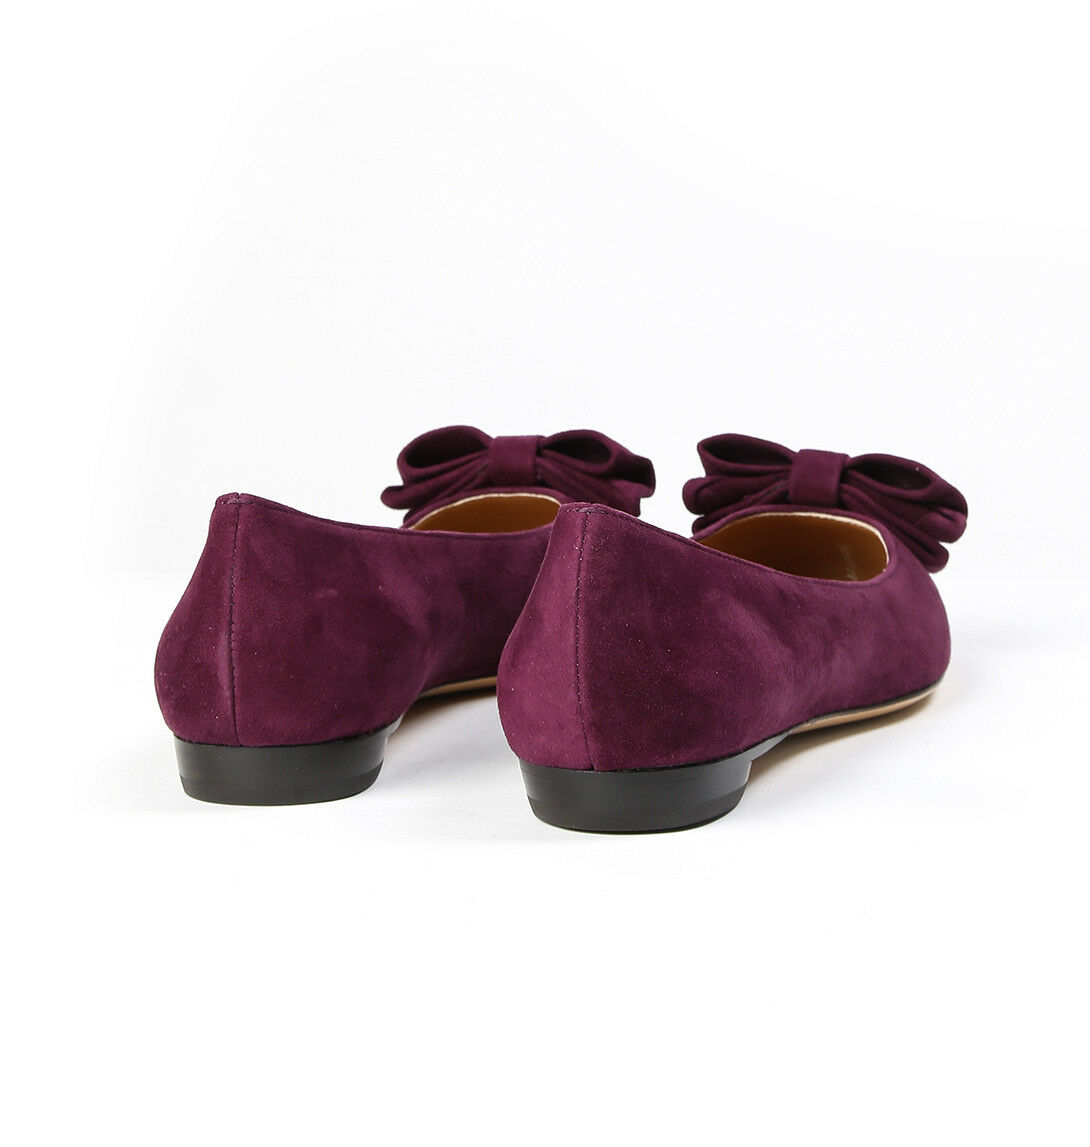 NIB NEW Salvatore Salvatore Salvatore Ferragamo Rubia Black or purple Suede Ballerina Flats 10 M 96f6ae